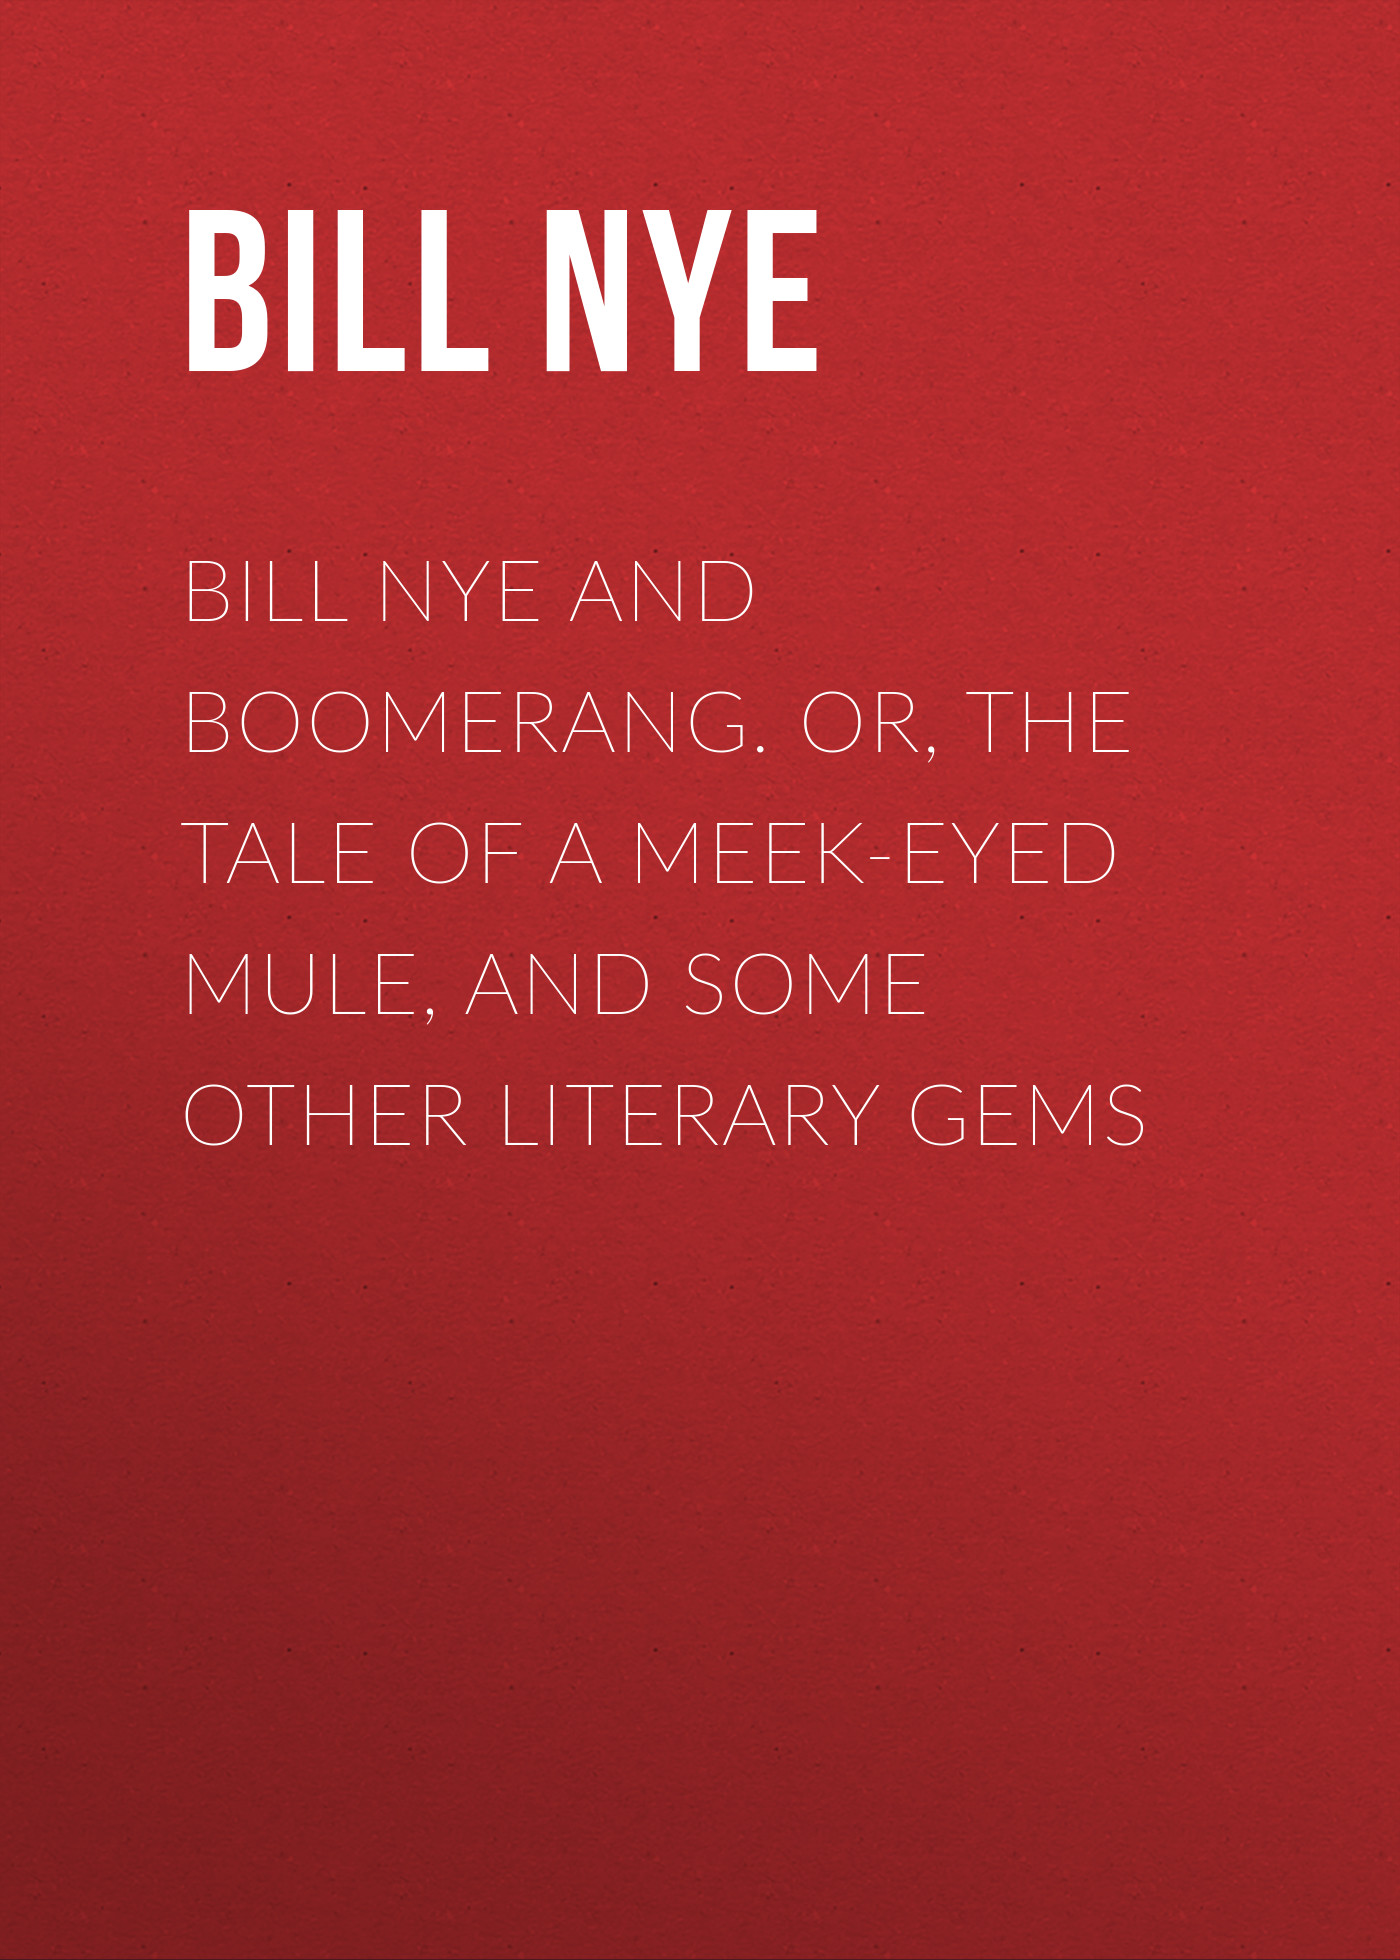 Bill Nye and Boomerang. Or, The Tale of a Meek-Eyed Mule, and Some Other Literary Gems